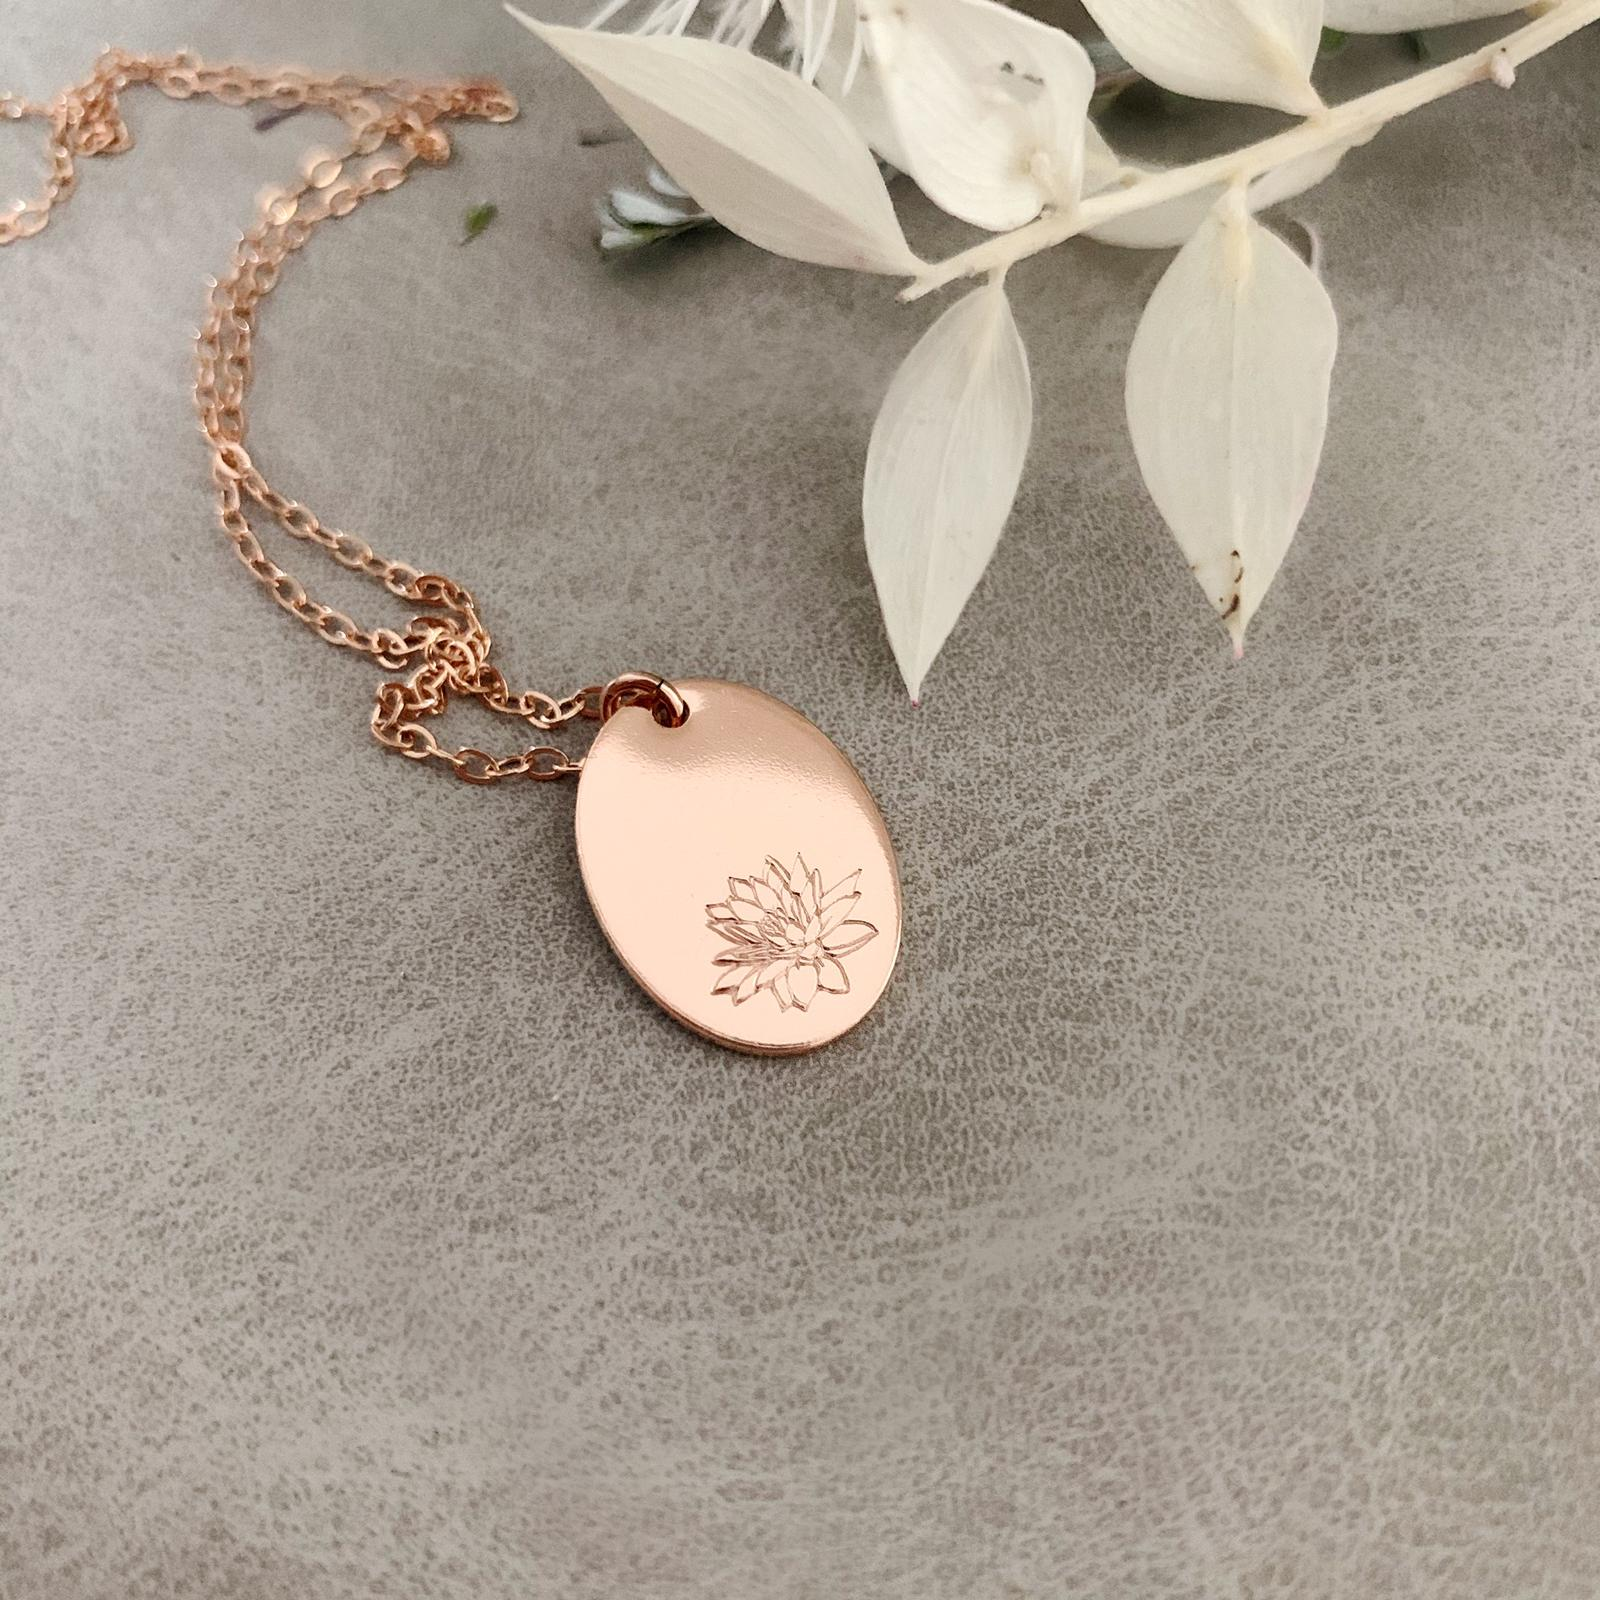 Birth Flowers Necklace - 1 Flower - Oval Disc